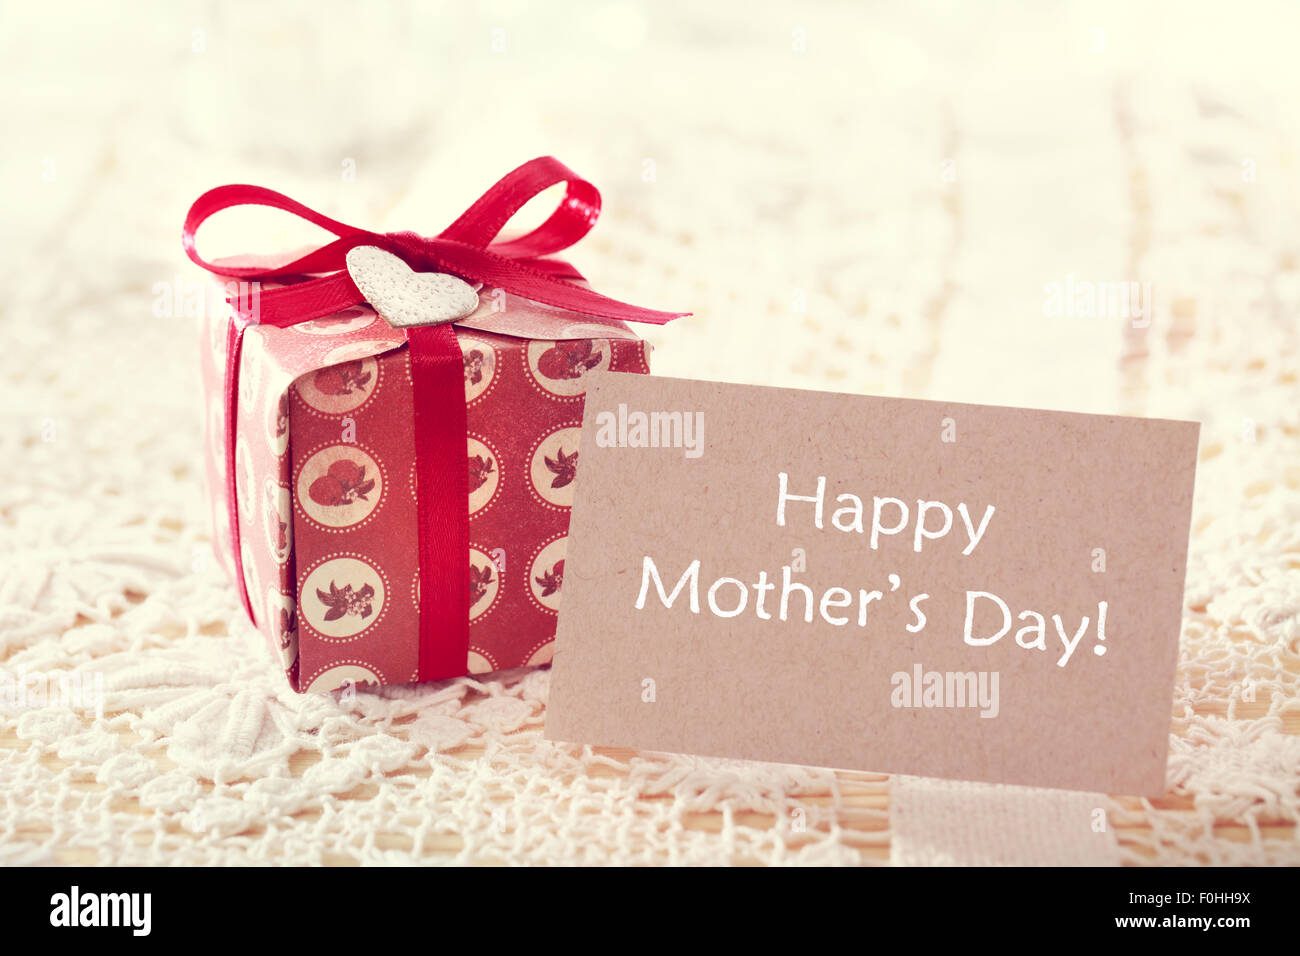 Happy Mothers Day Message Written On A Card With A Hand Crafted